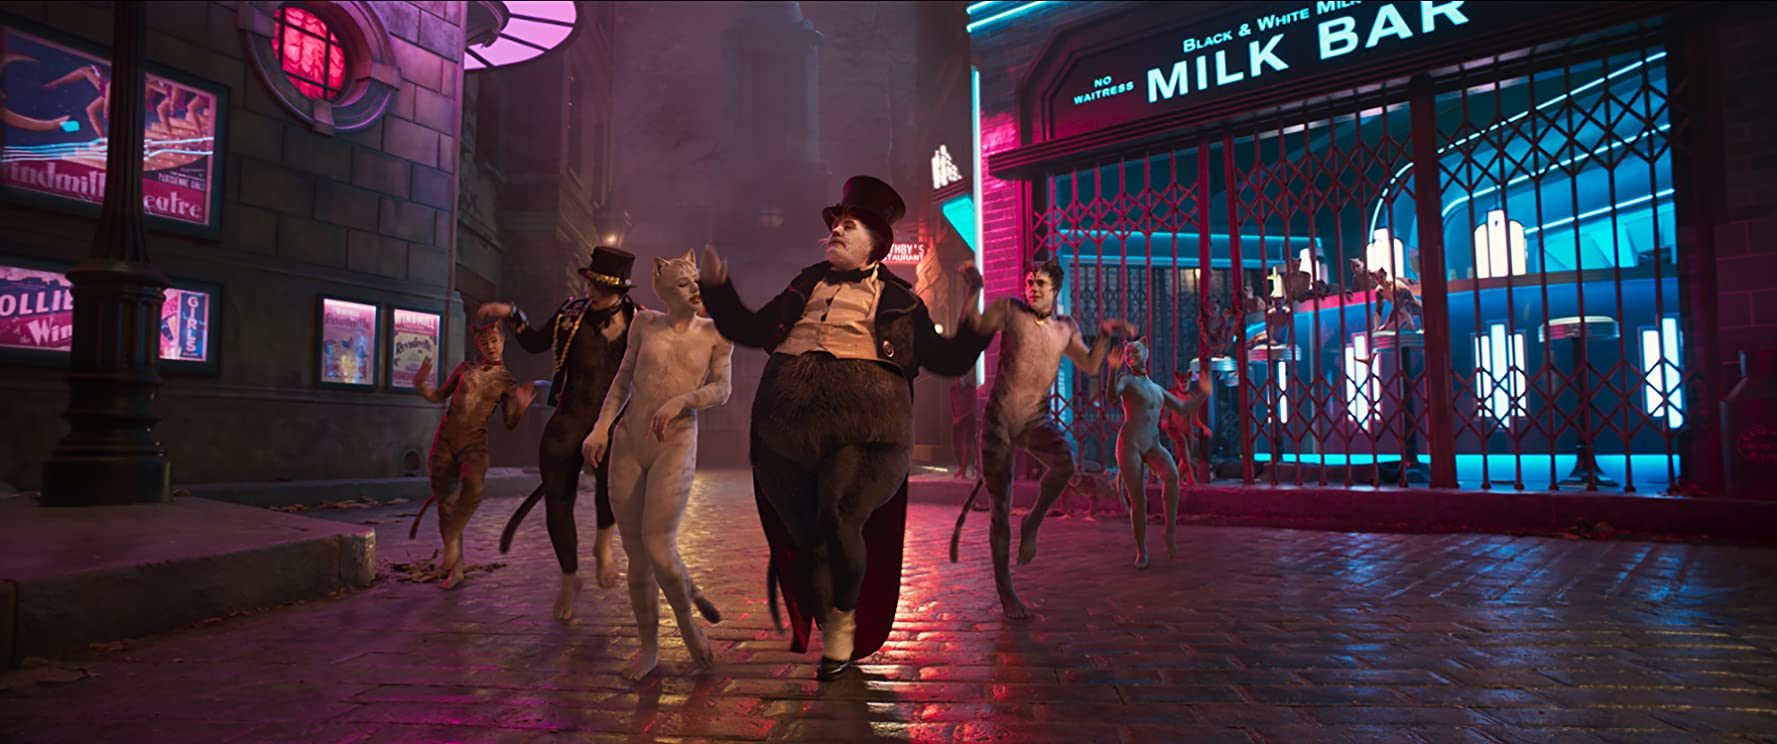 James Corden, Robbie Fairchild, Laurie Davidson, and Francesca Hayward in Cats (2019)